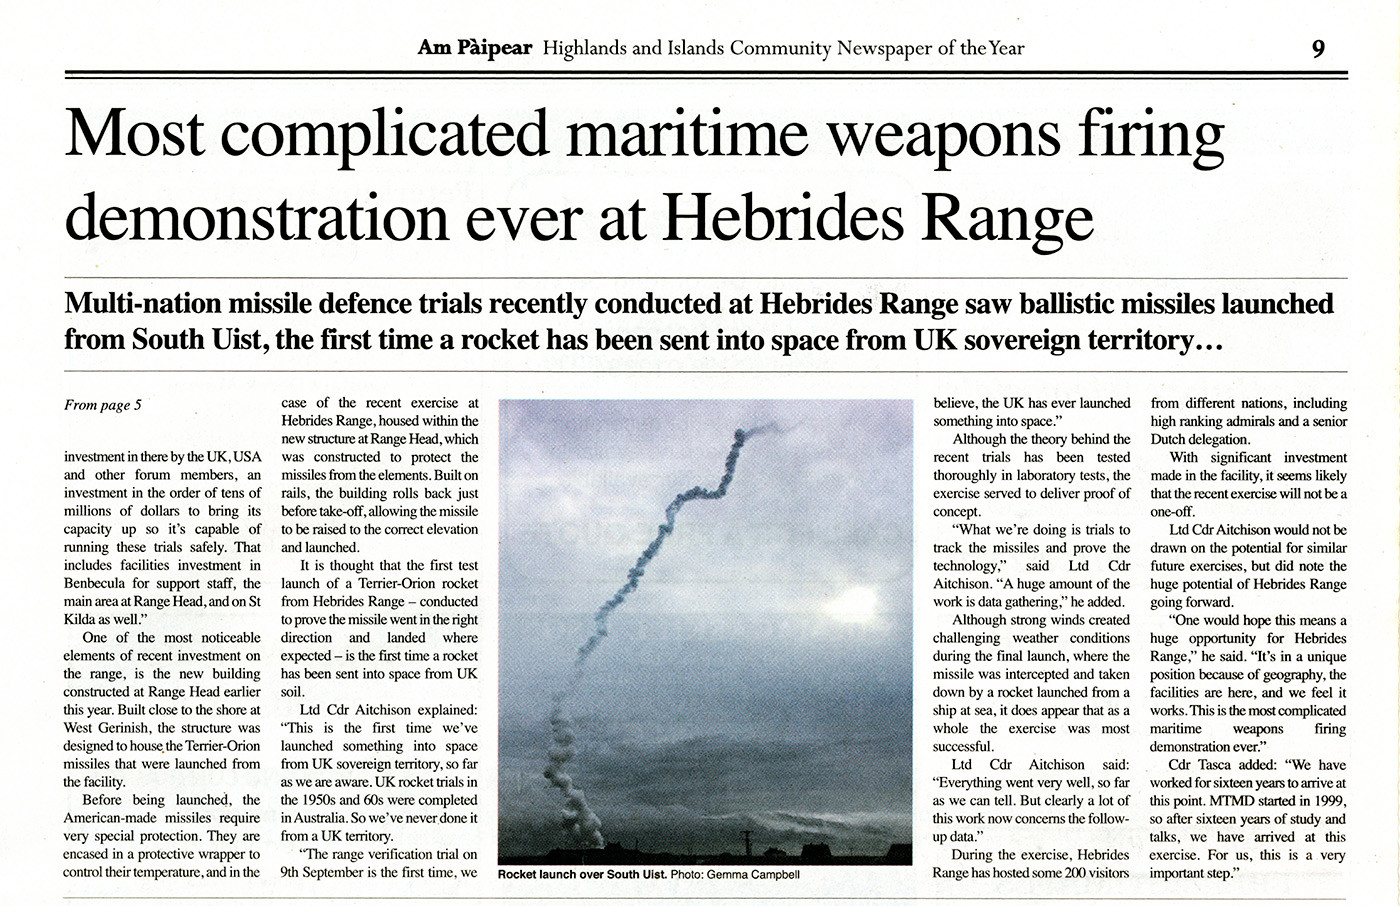 Maritime Weapons Demonstration